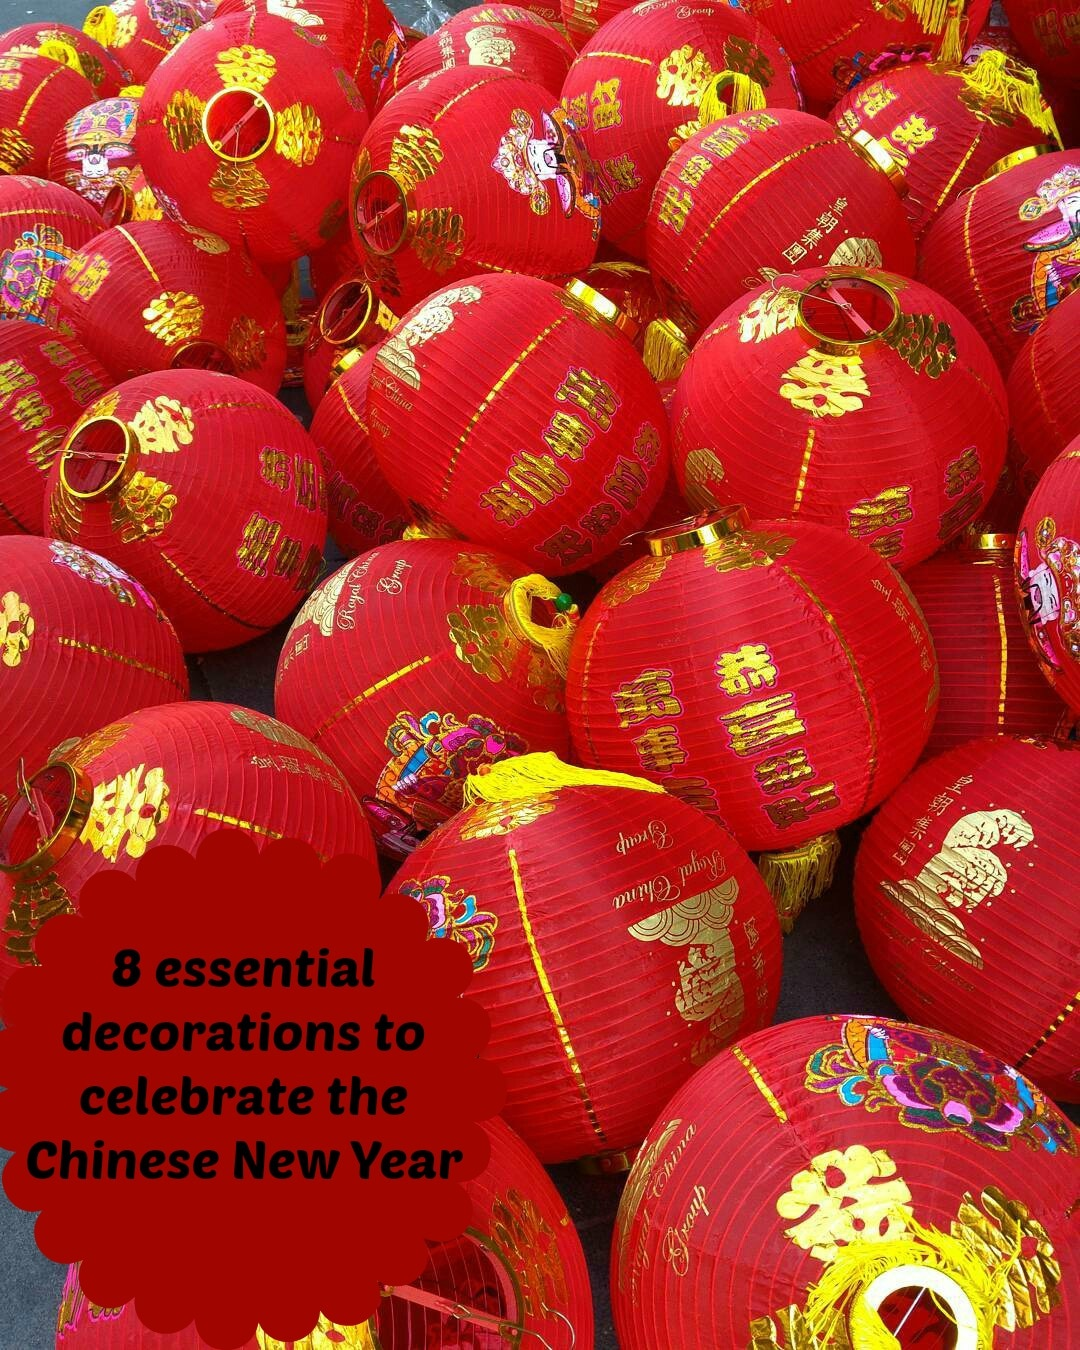 _essentia_decorations_to_celebrate_the_Chinese_New_Year